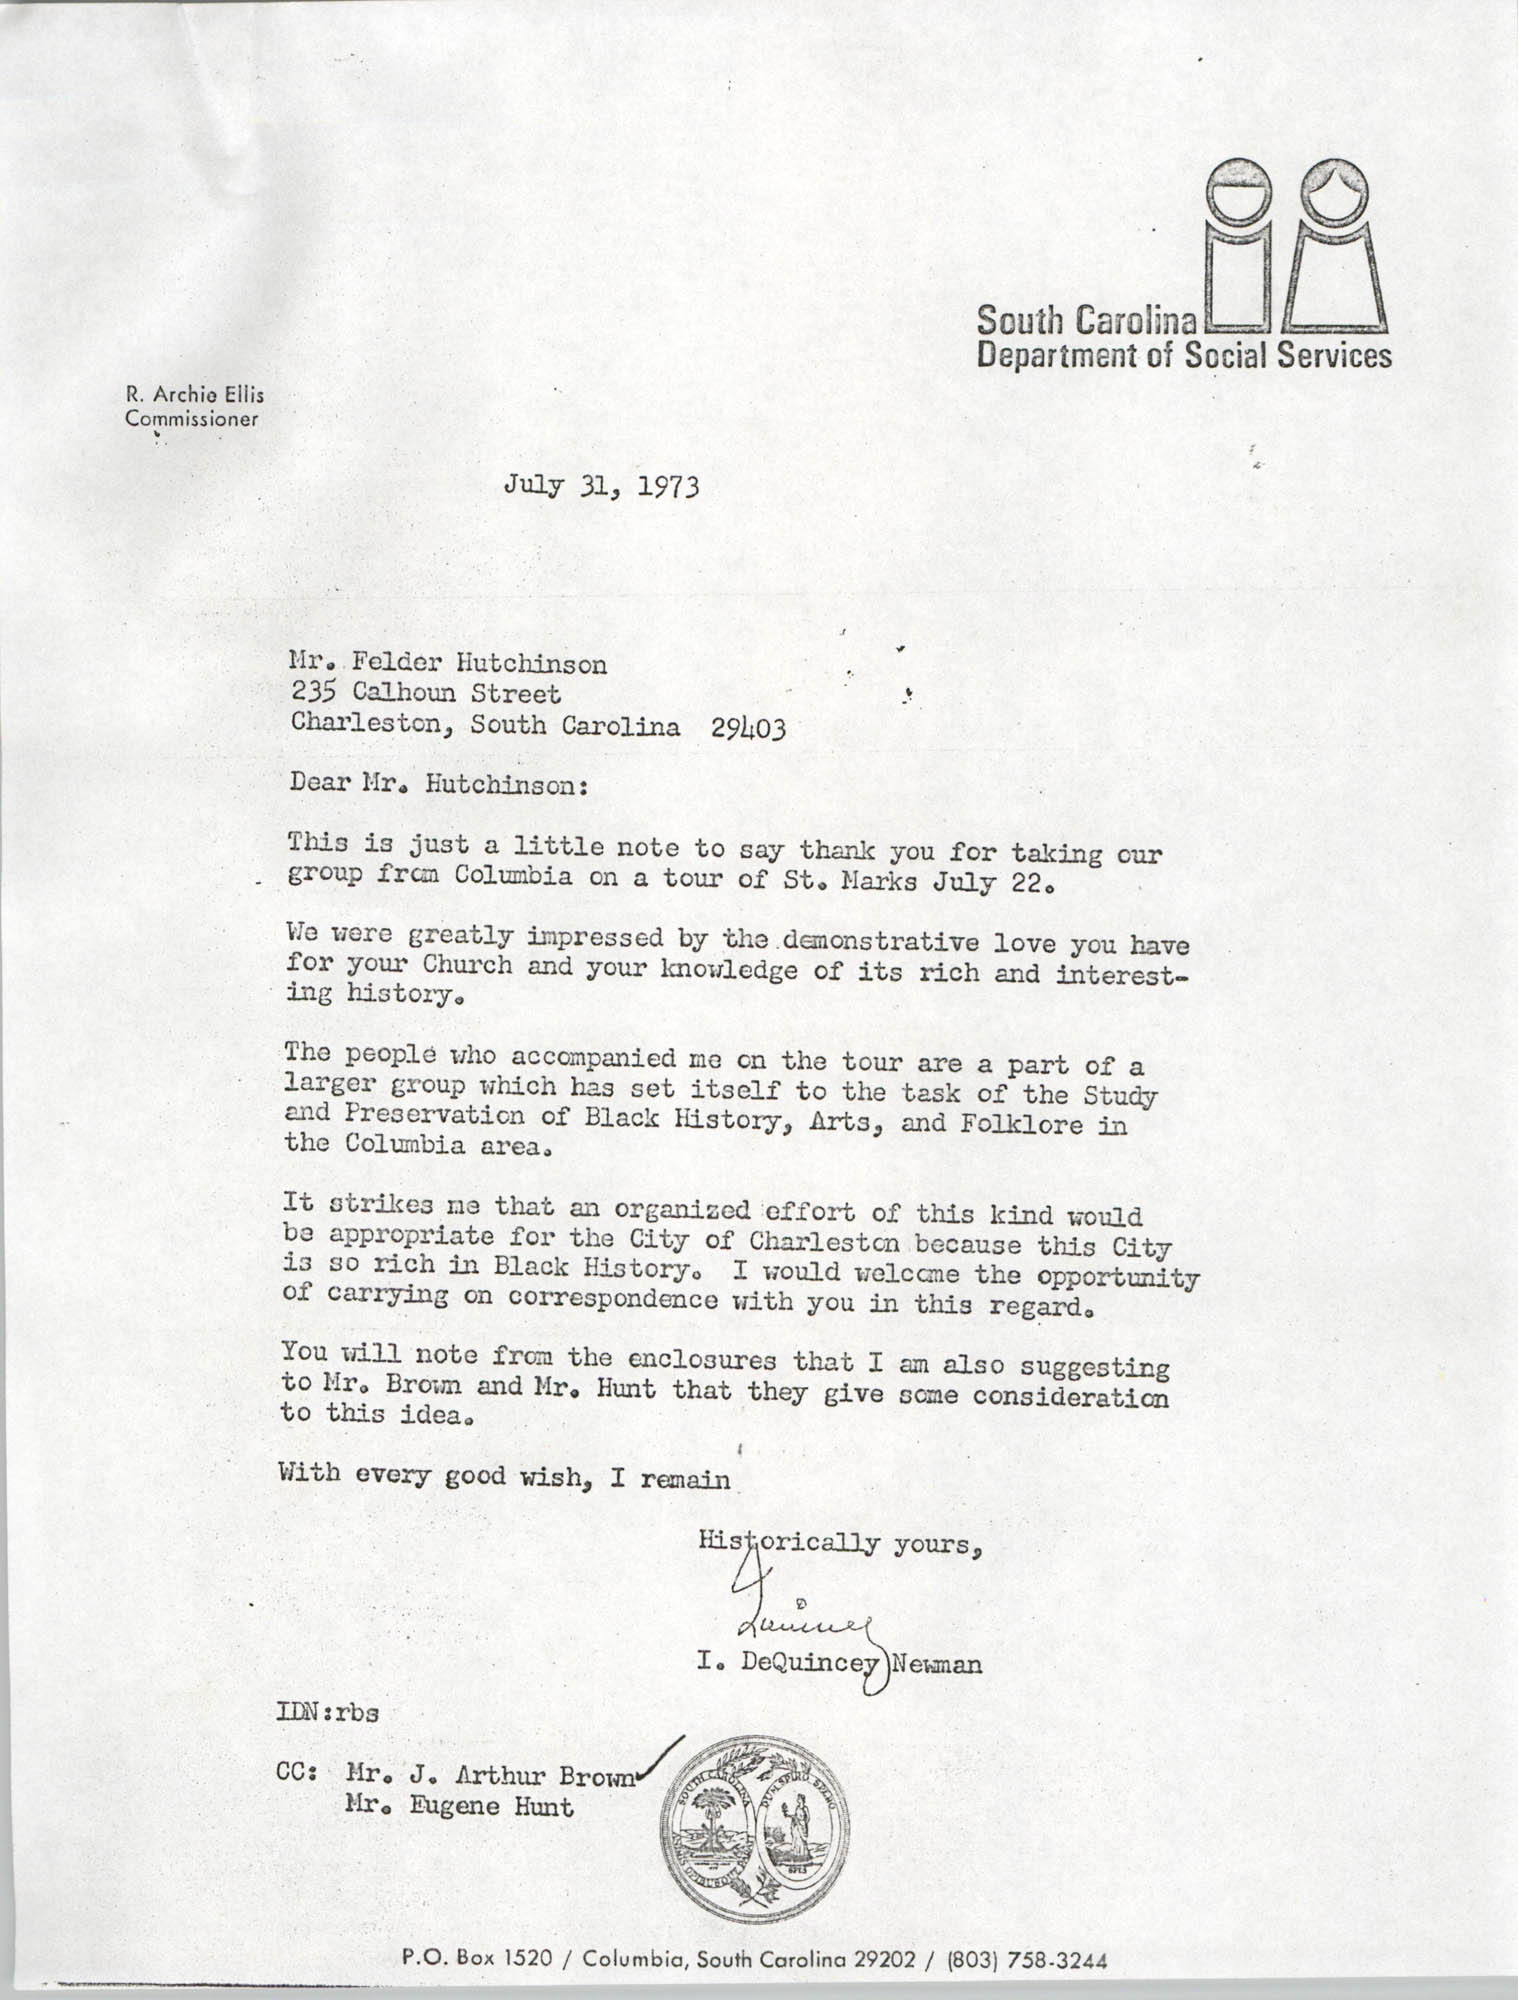 Letter from I. DeQuincey Newman to Felder Hutchinson, July 31, 1973